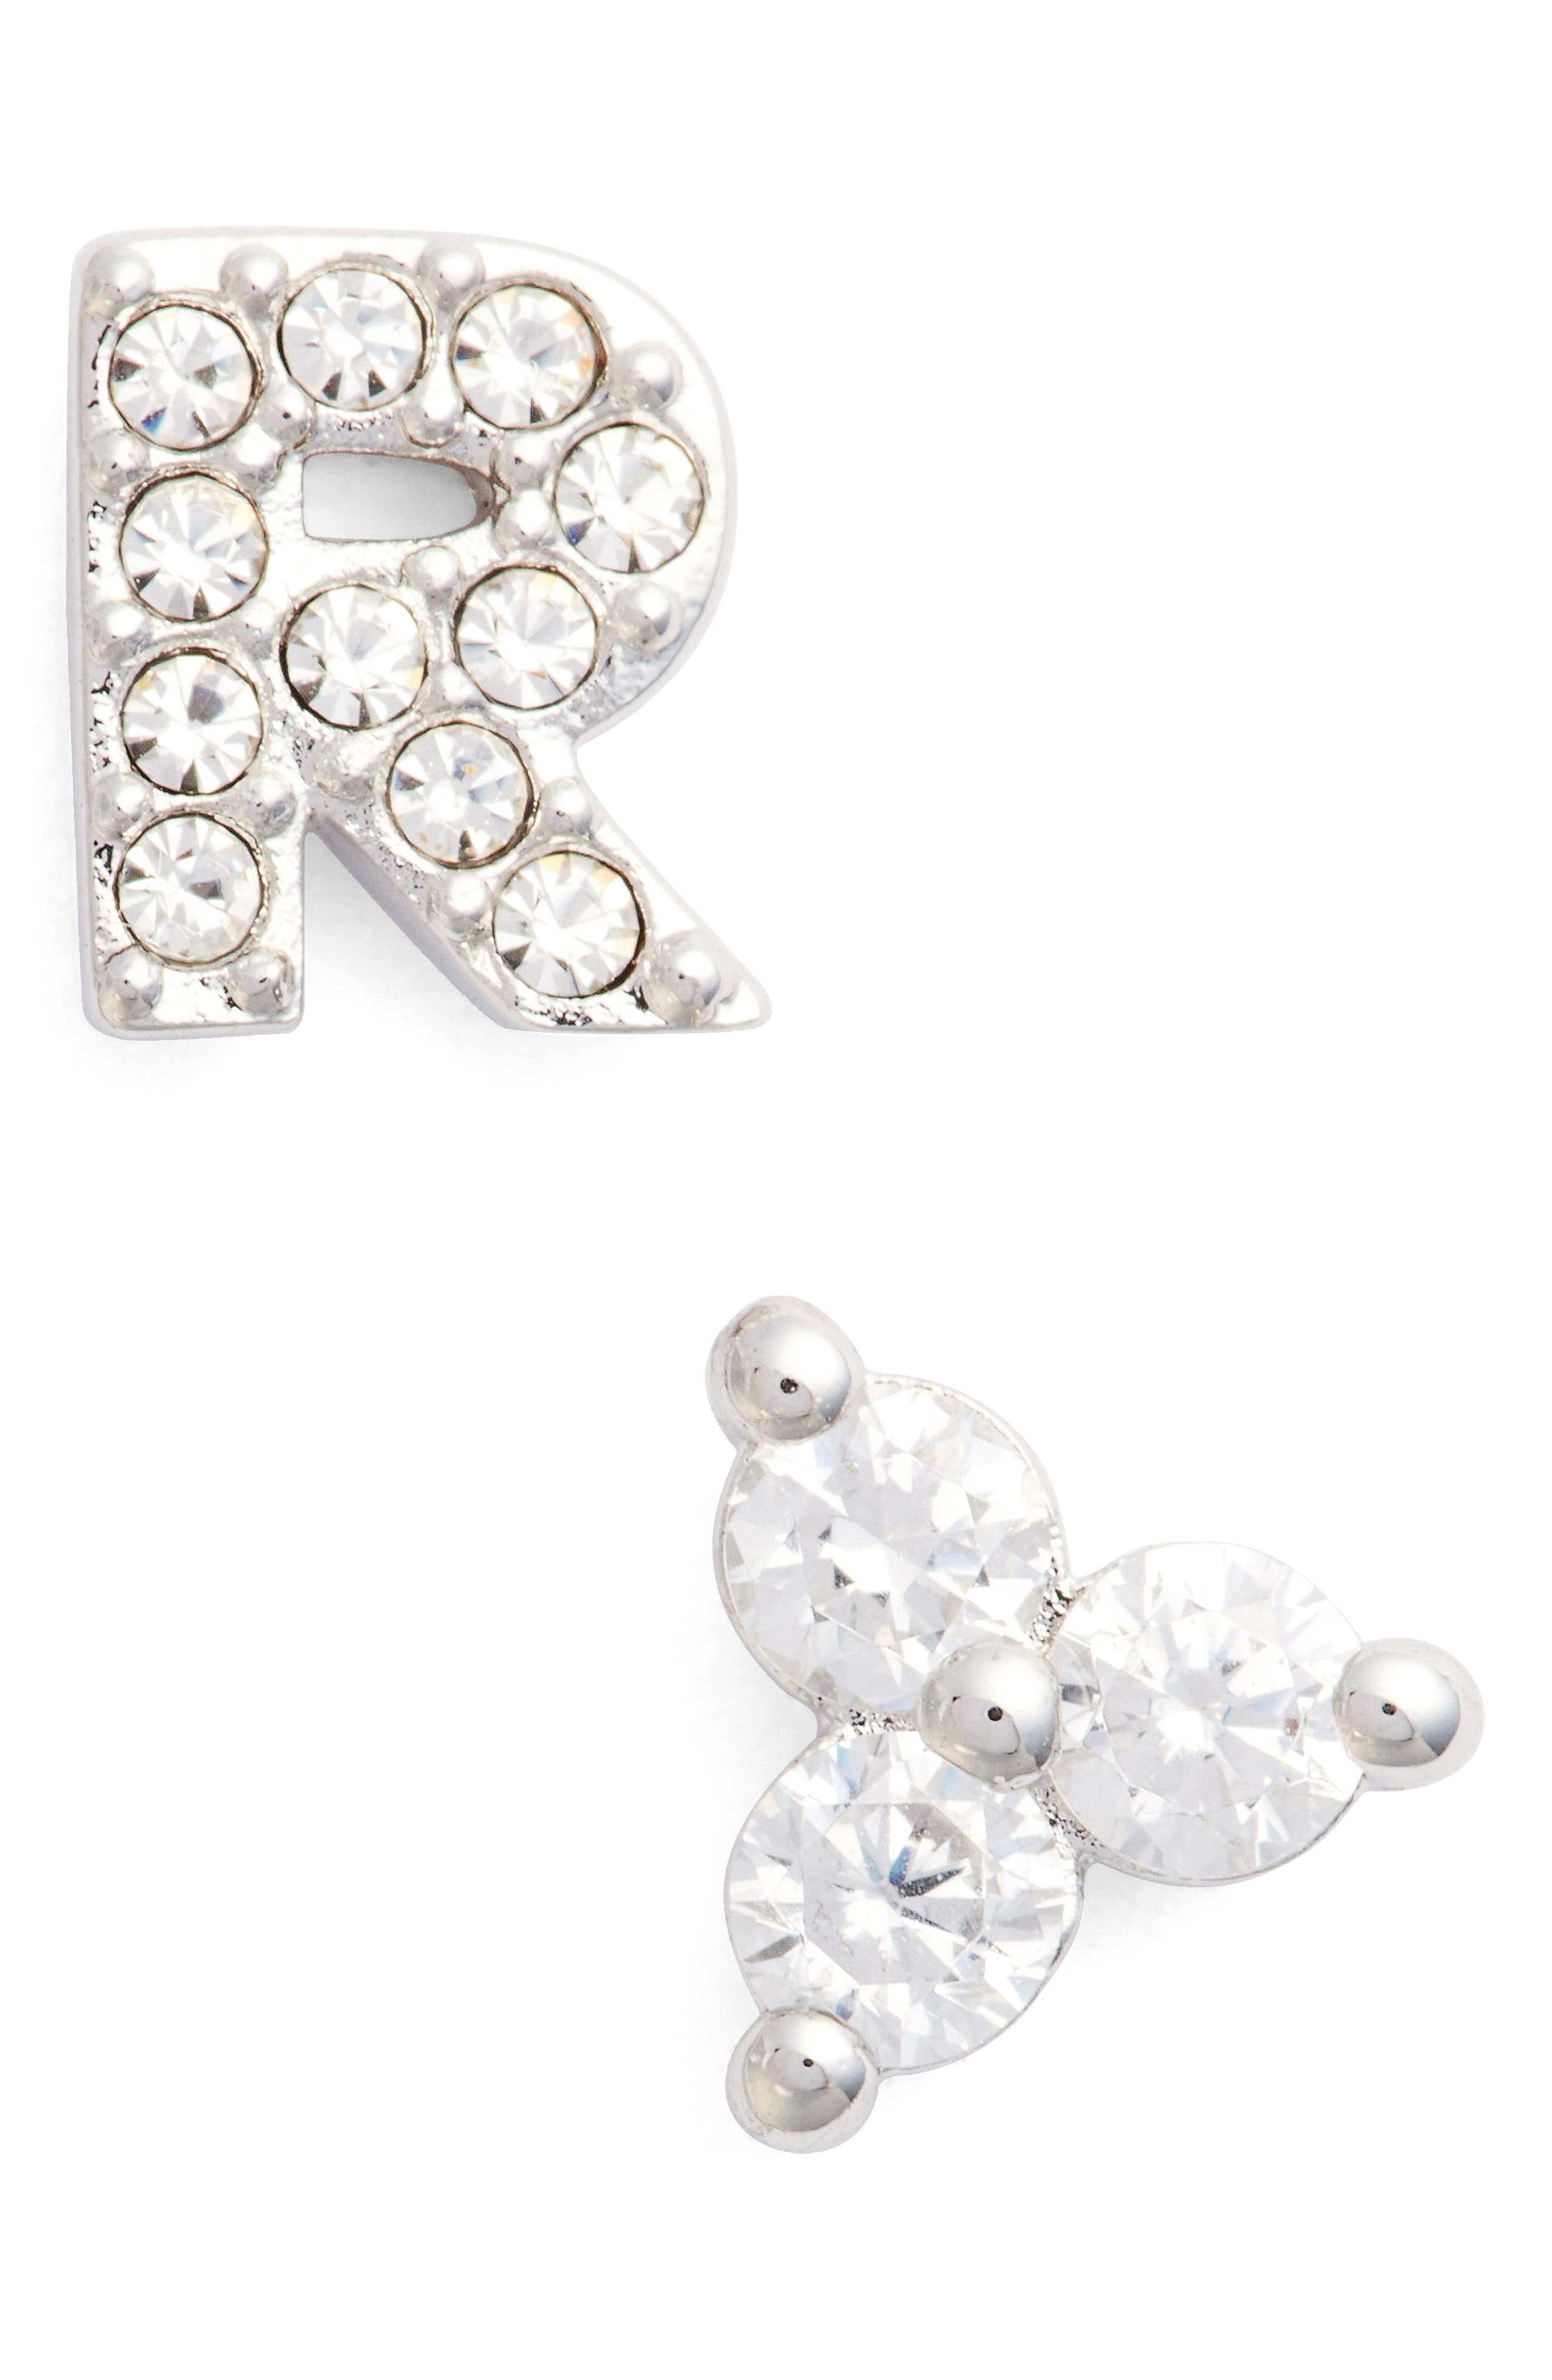 Nadri Initial Mismatched Stud Earrings